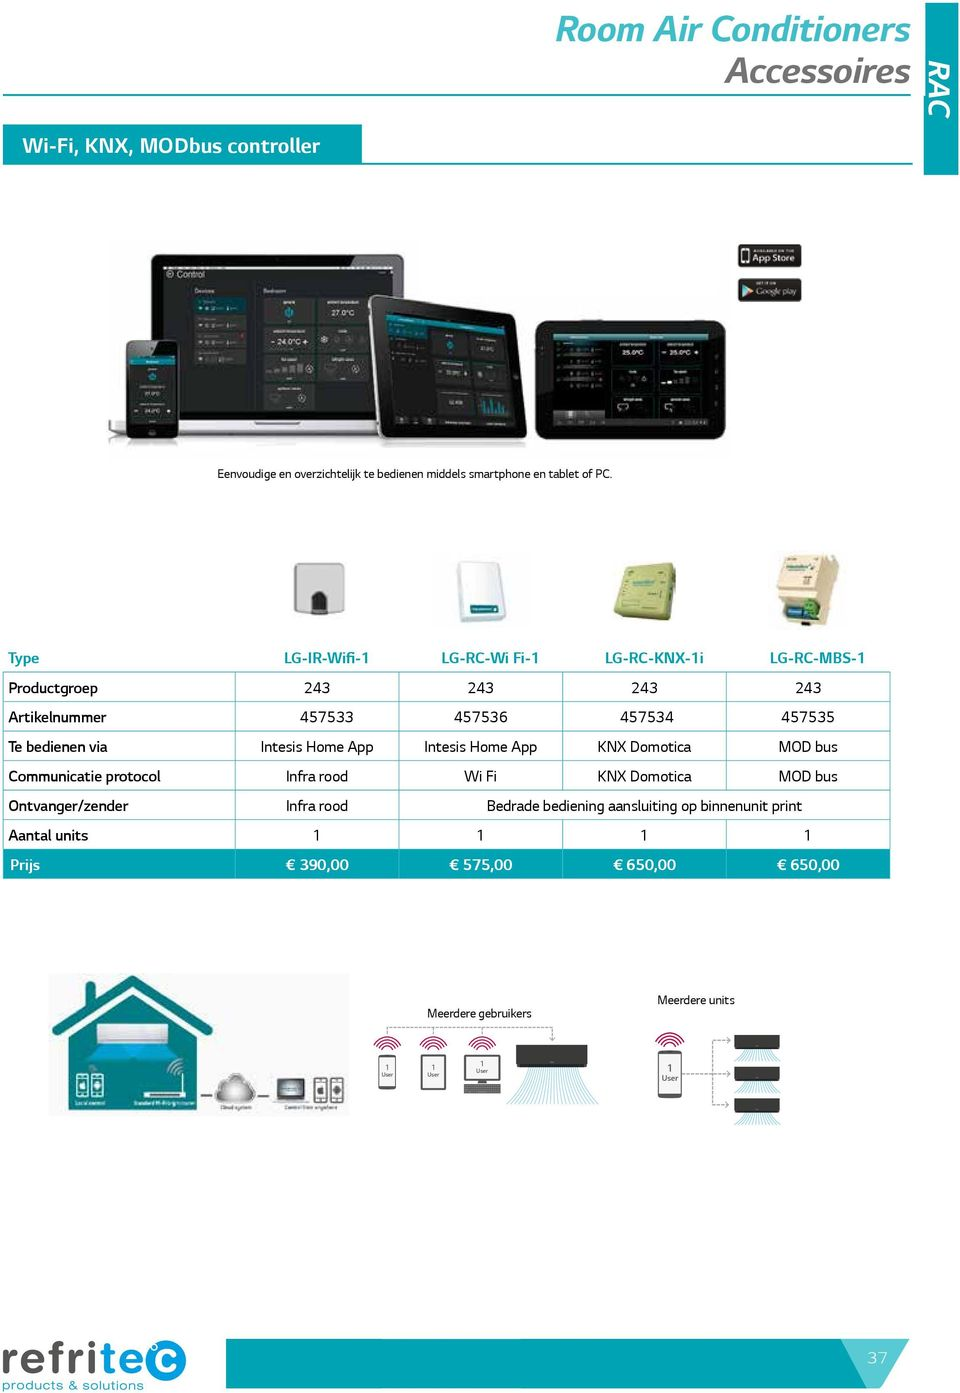 pp Intesis Home pp KNX Domotica MOD bus Communicatie protocol Infra rood Wi Fi KNX Domotica MOD bus Ontvanger/zender Infra rood Bedrade bediening